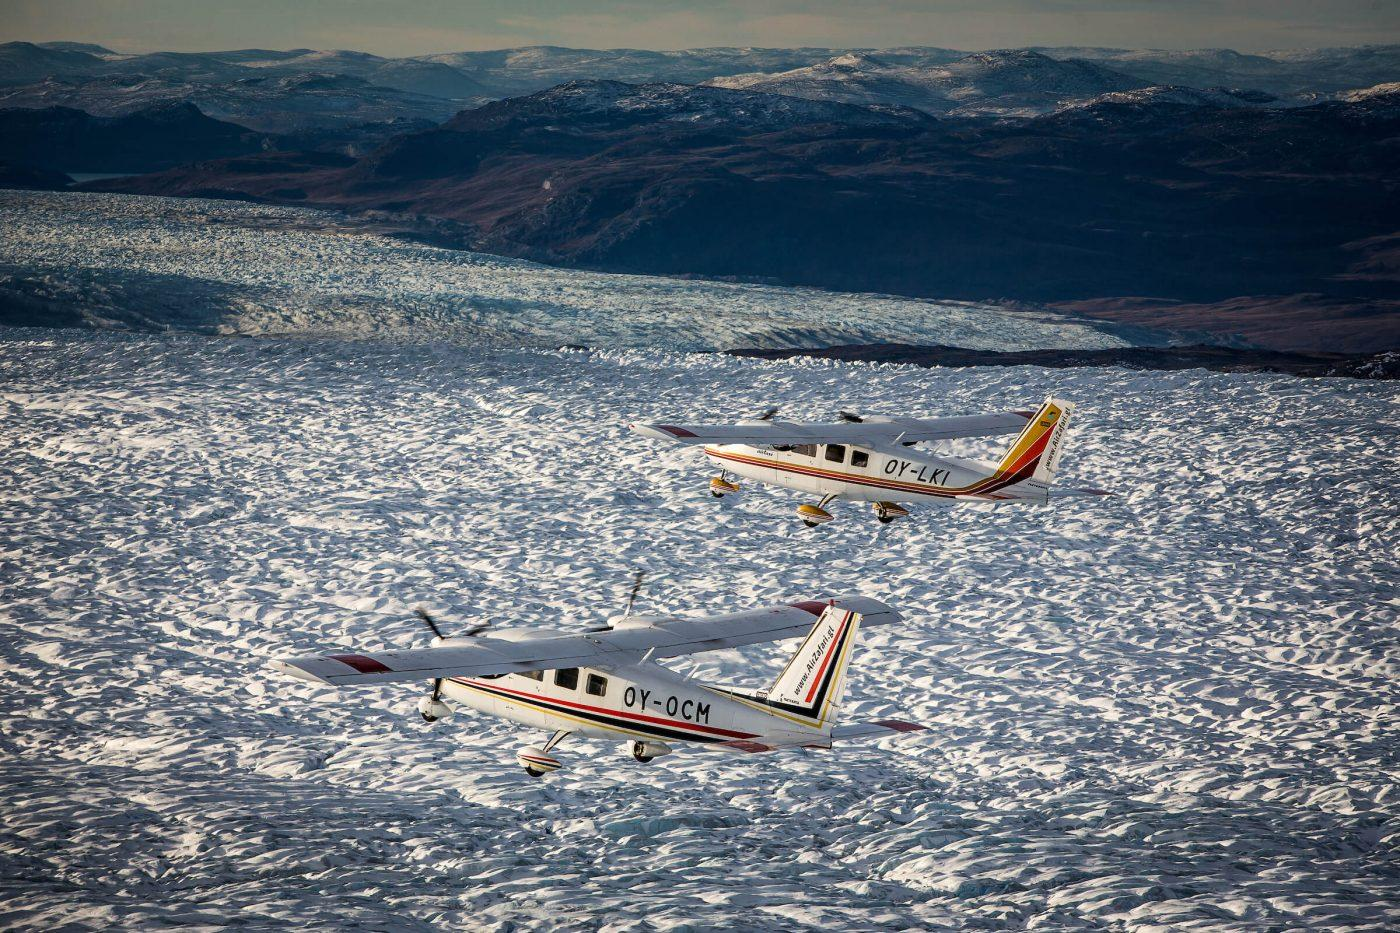 A view of two Air Zafari flightseeing planes over the Greenland Ice Sheet near Kangerlussuaq Airport. By Mads Pihl